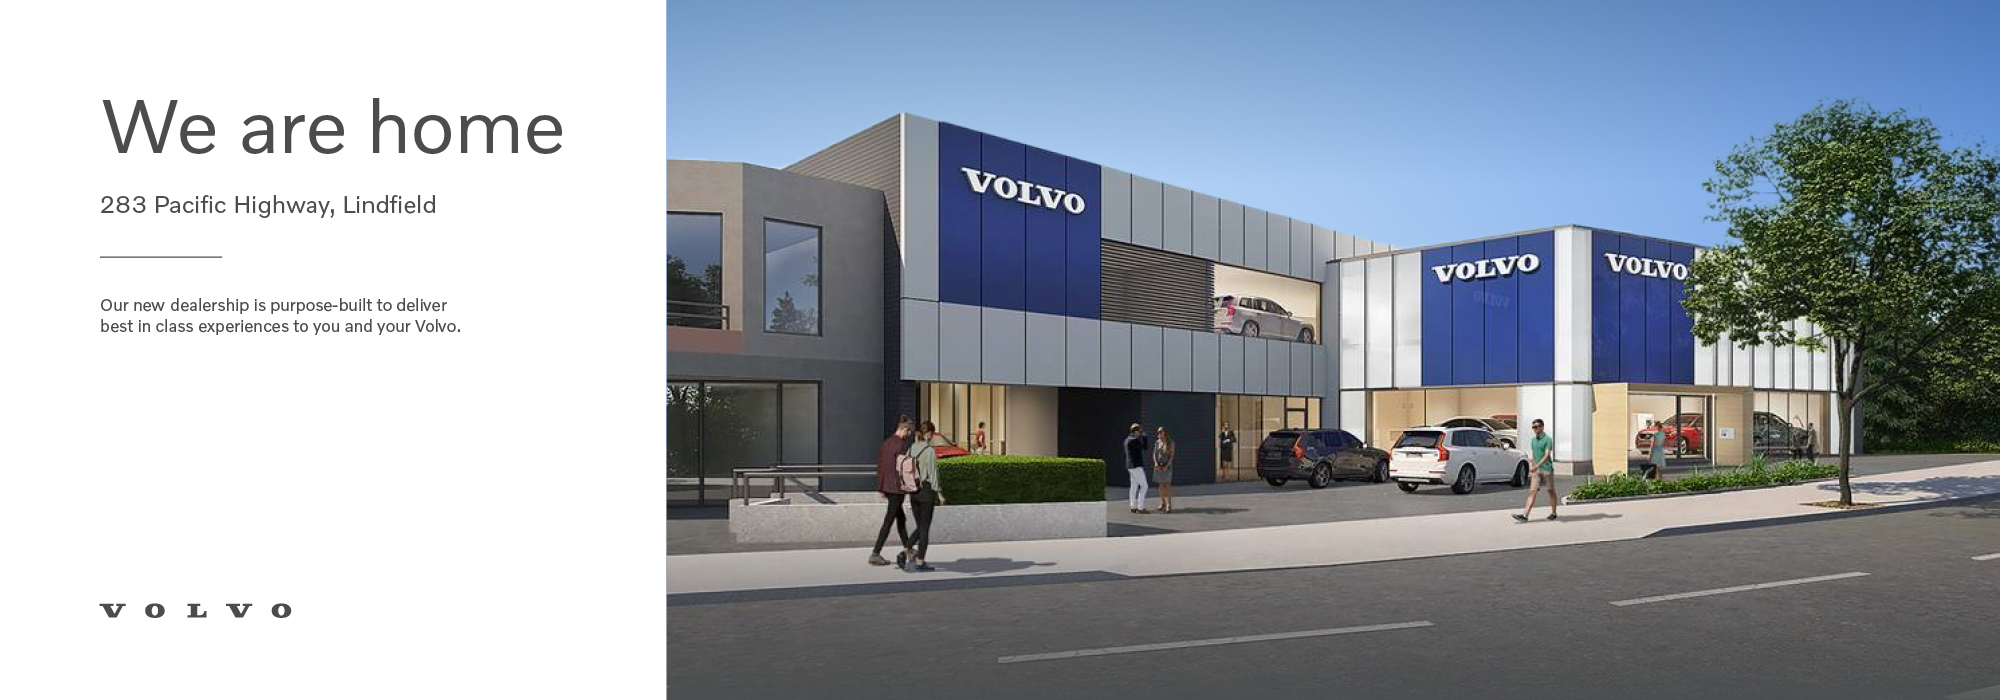 Our new dealership is purpose-built to deliver best in class experiences to you and your Volvo.